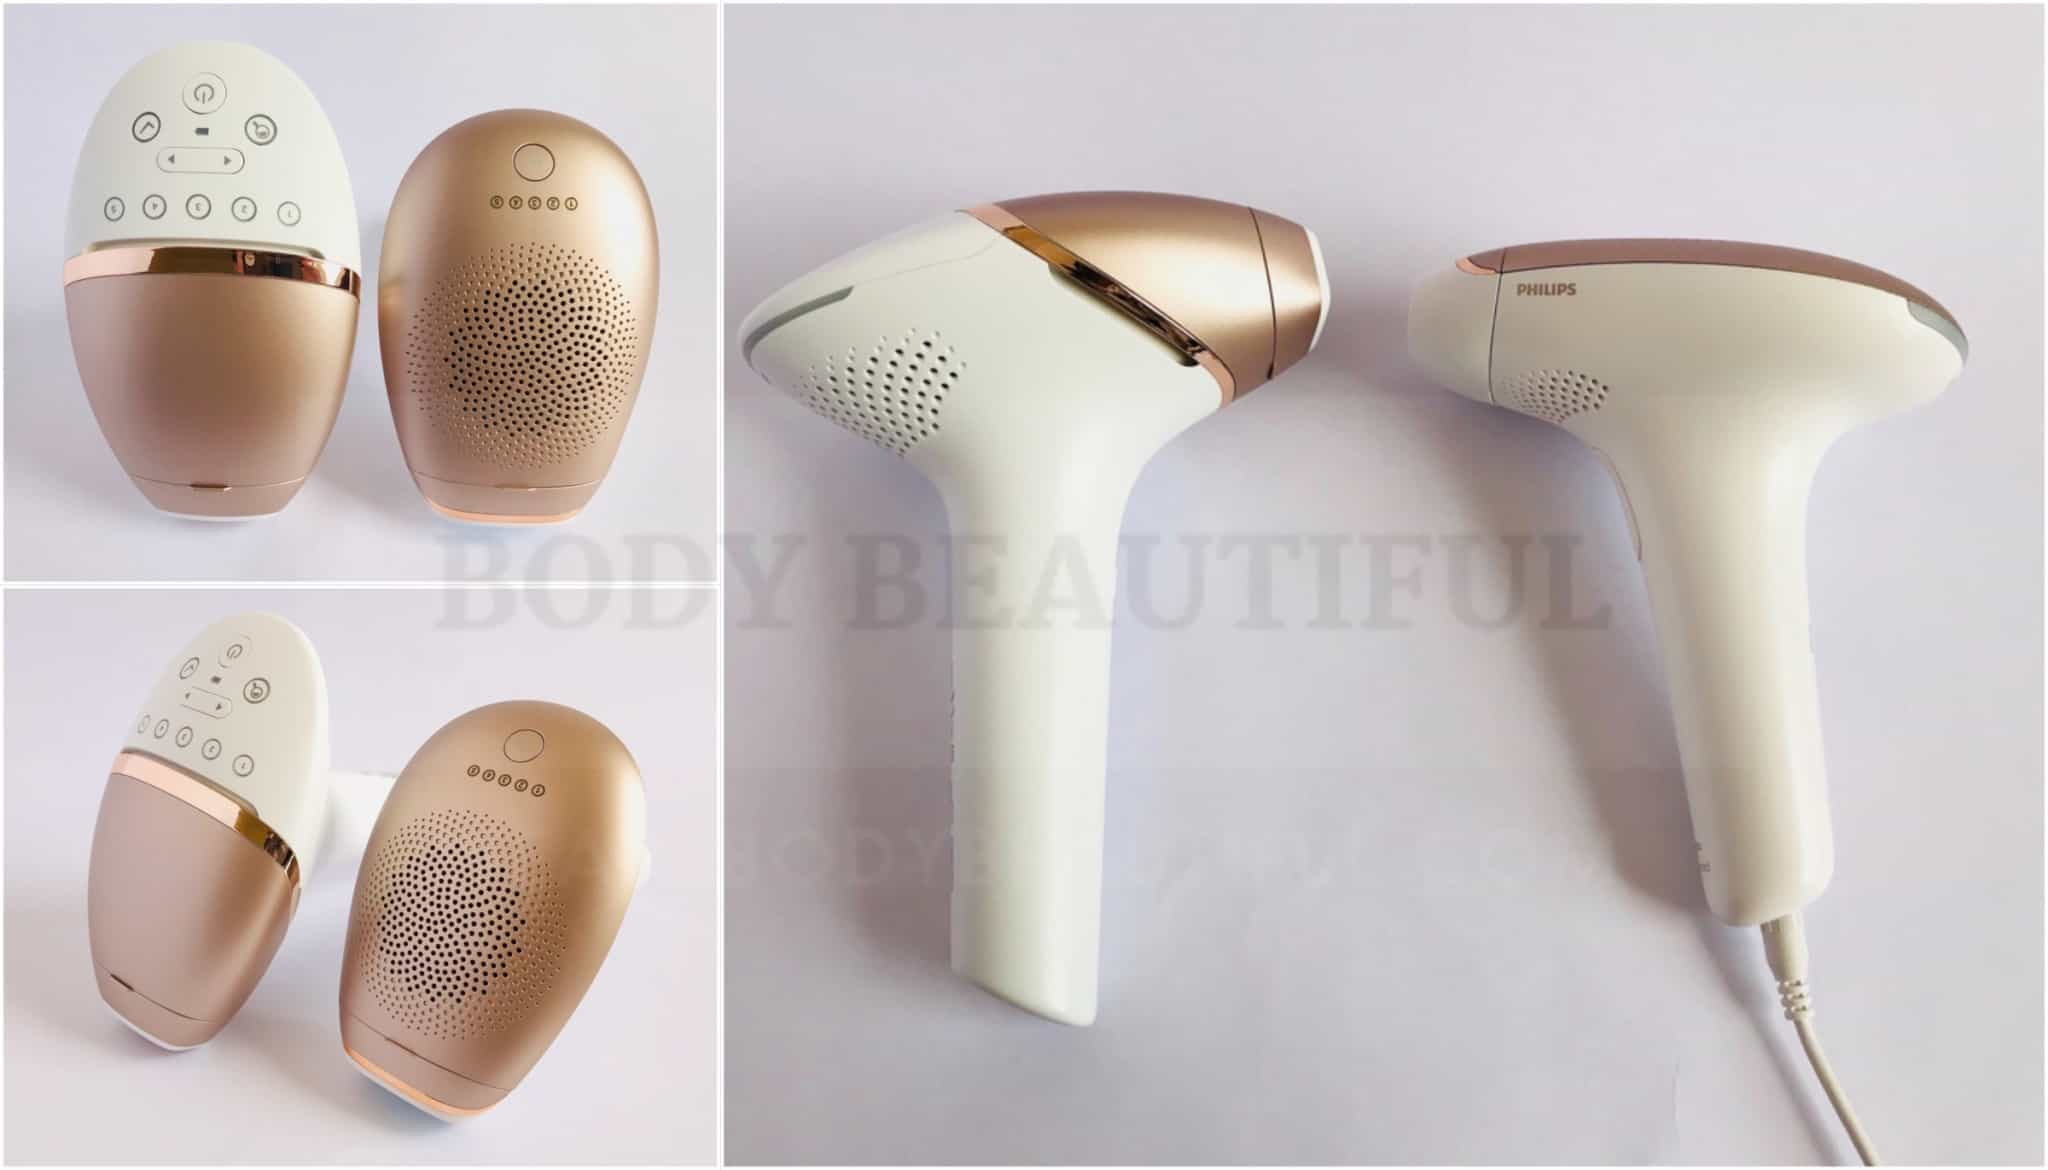 Philips Lumea PRestige vs Advanced: tried and tested comparison review by WeAreBodyBeautiful experts